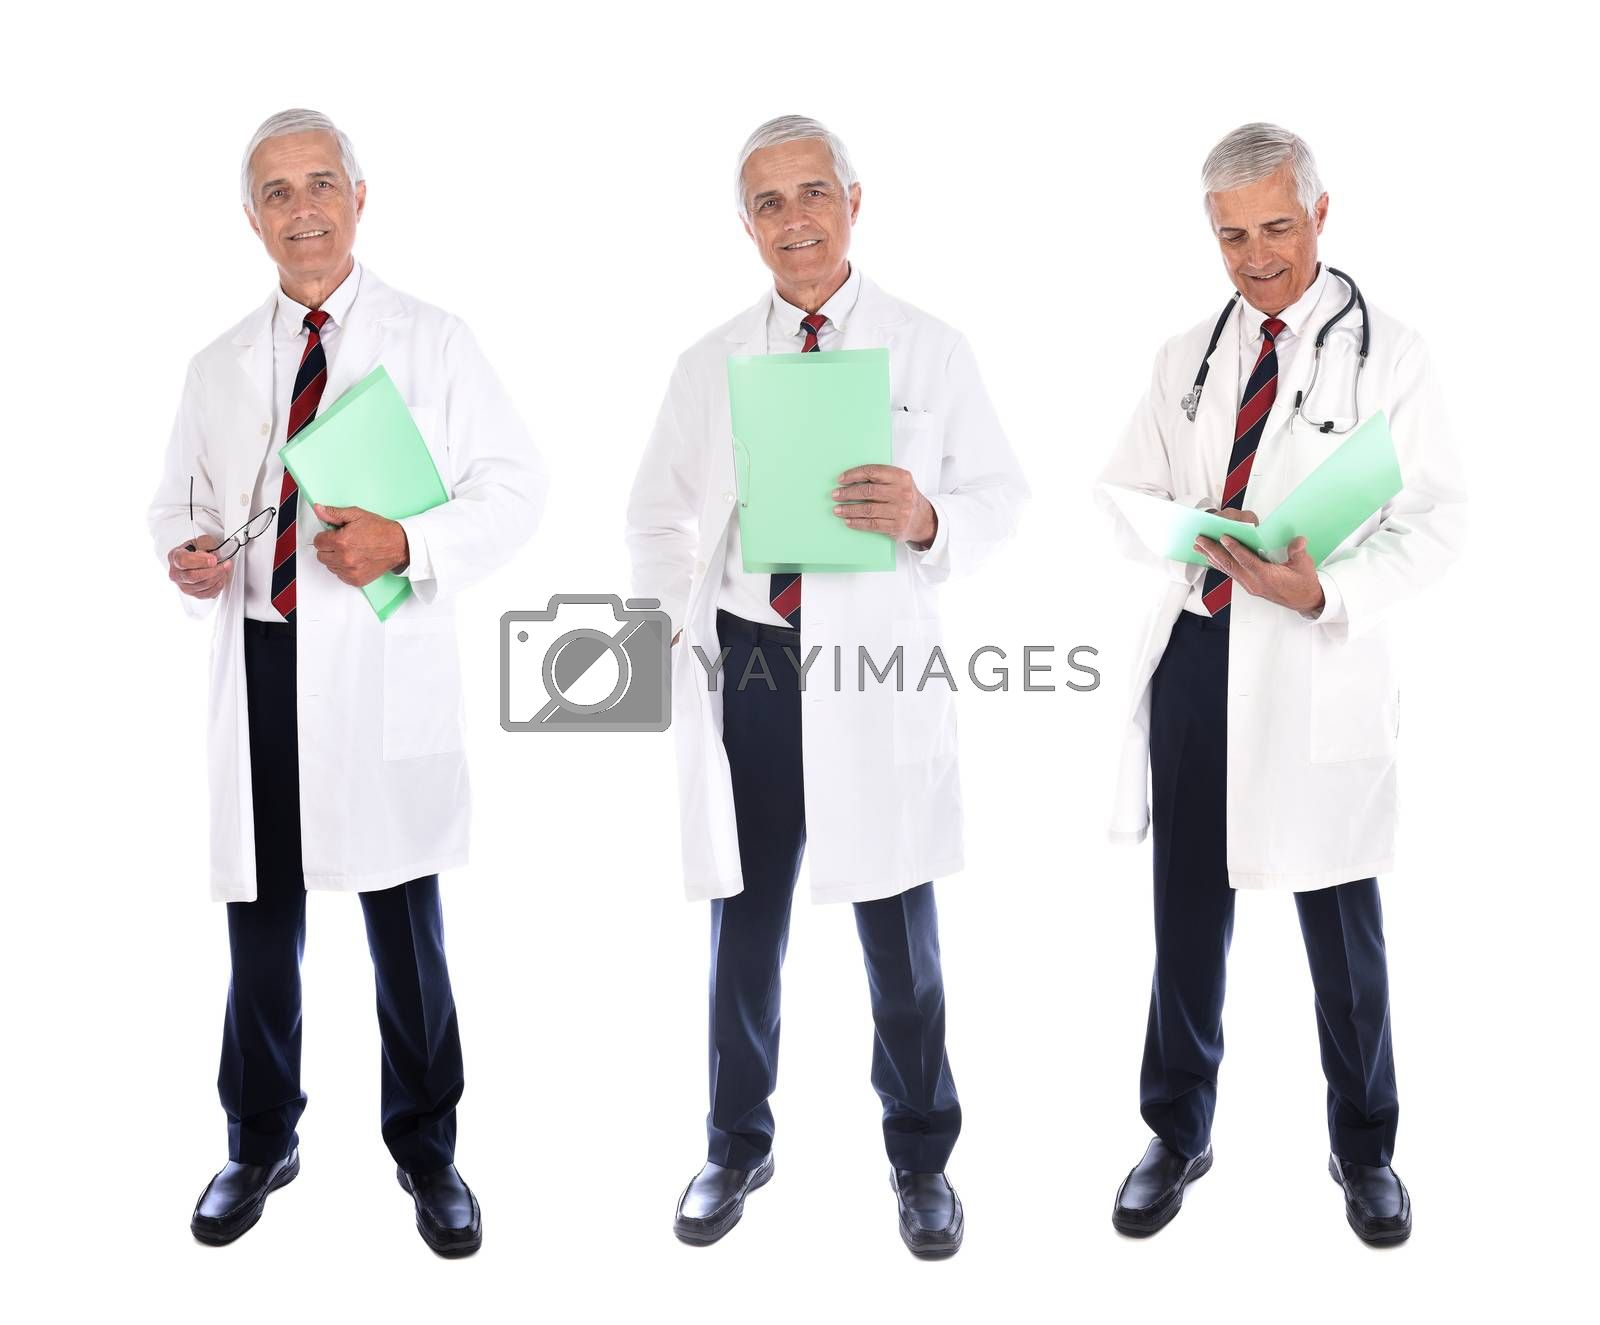 Three views of a mature doctor wearing a lab coat, and holding a patients file with different poses, isolated on white.